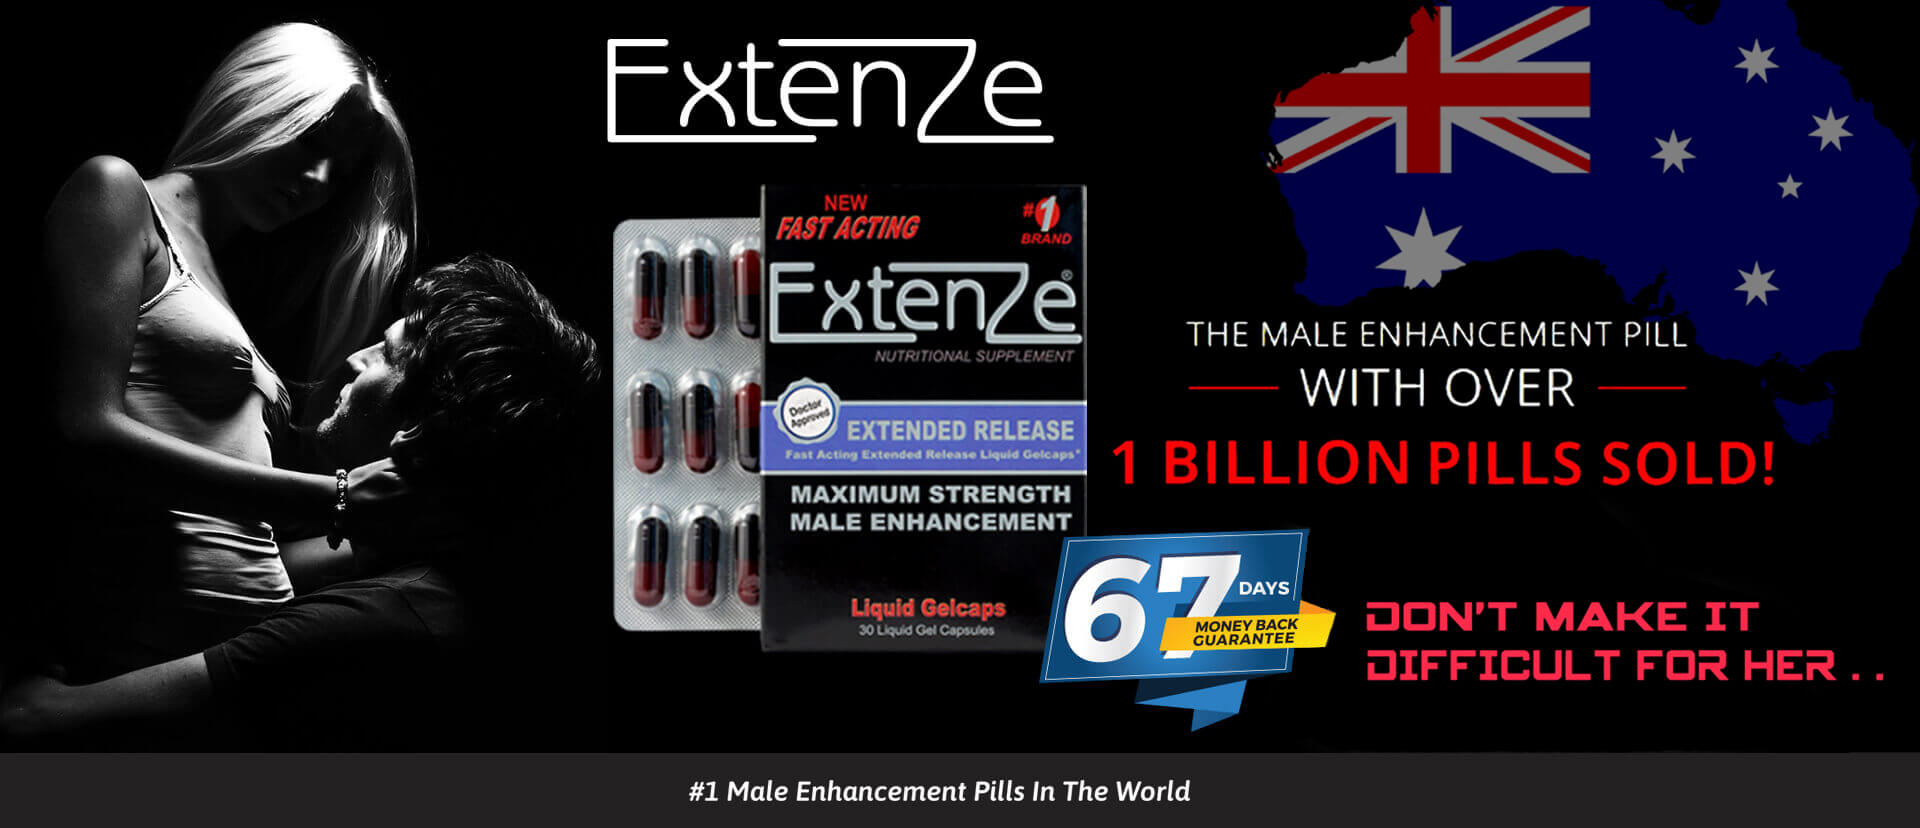 Male Enhancement Pills review months later